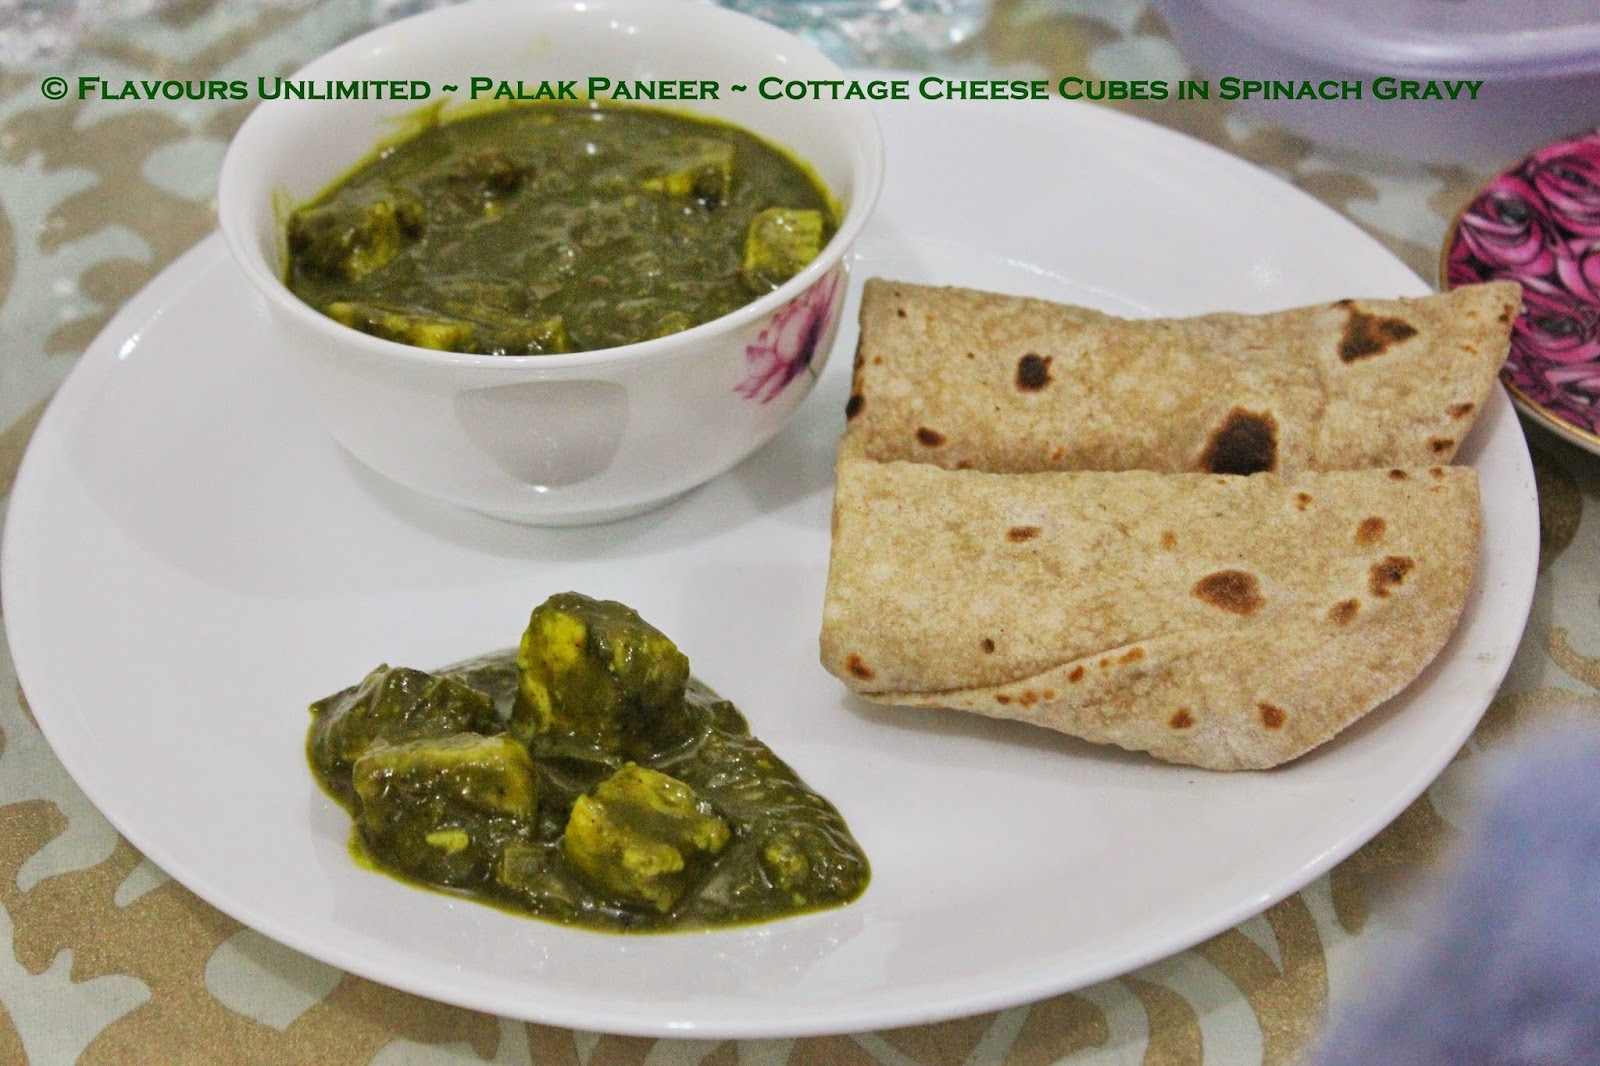 Fourth of July with Palak Paneer and Tandoori Paneer